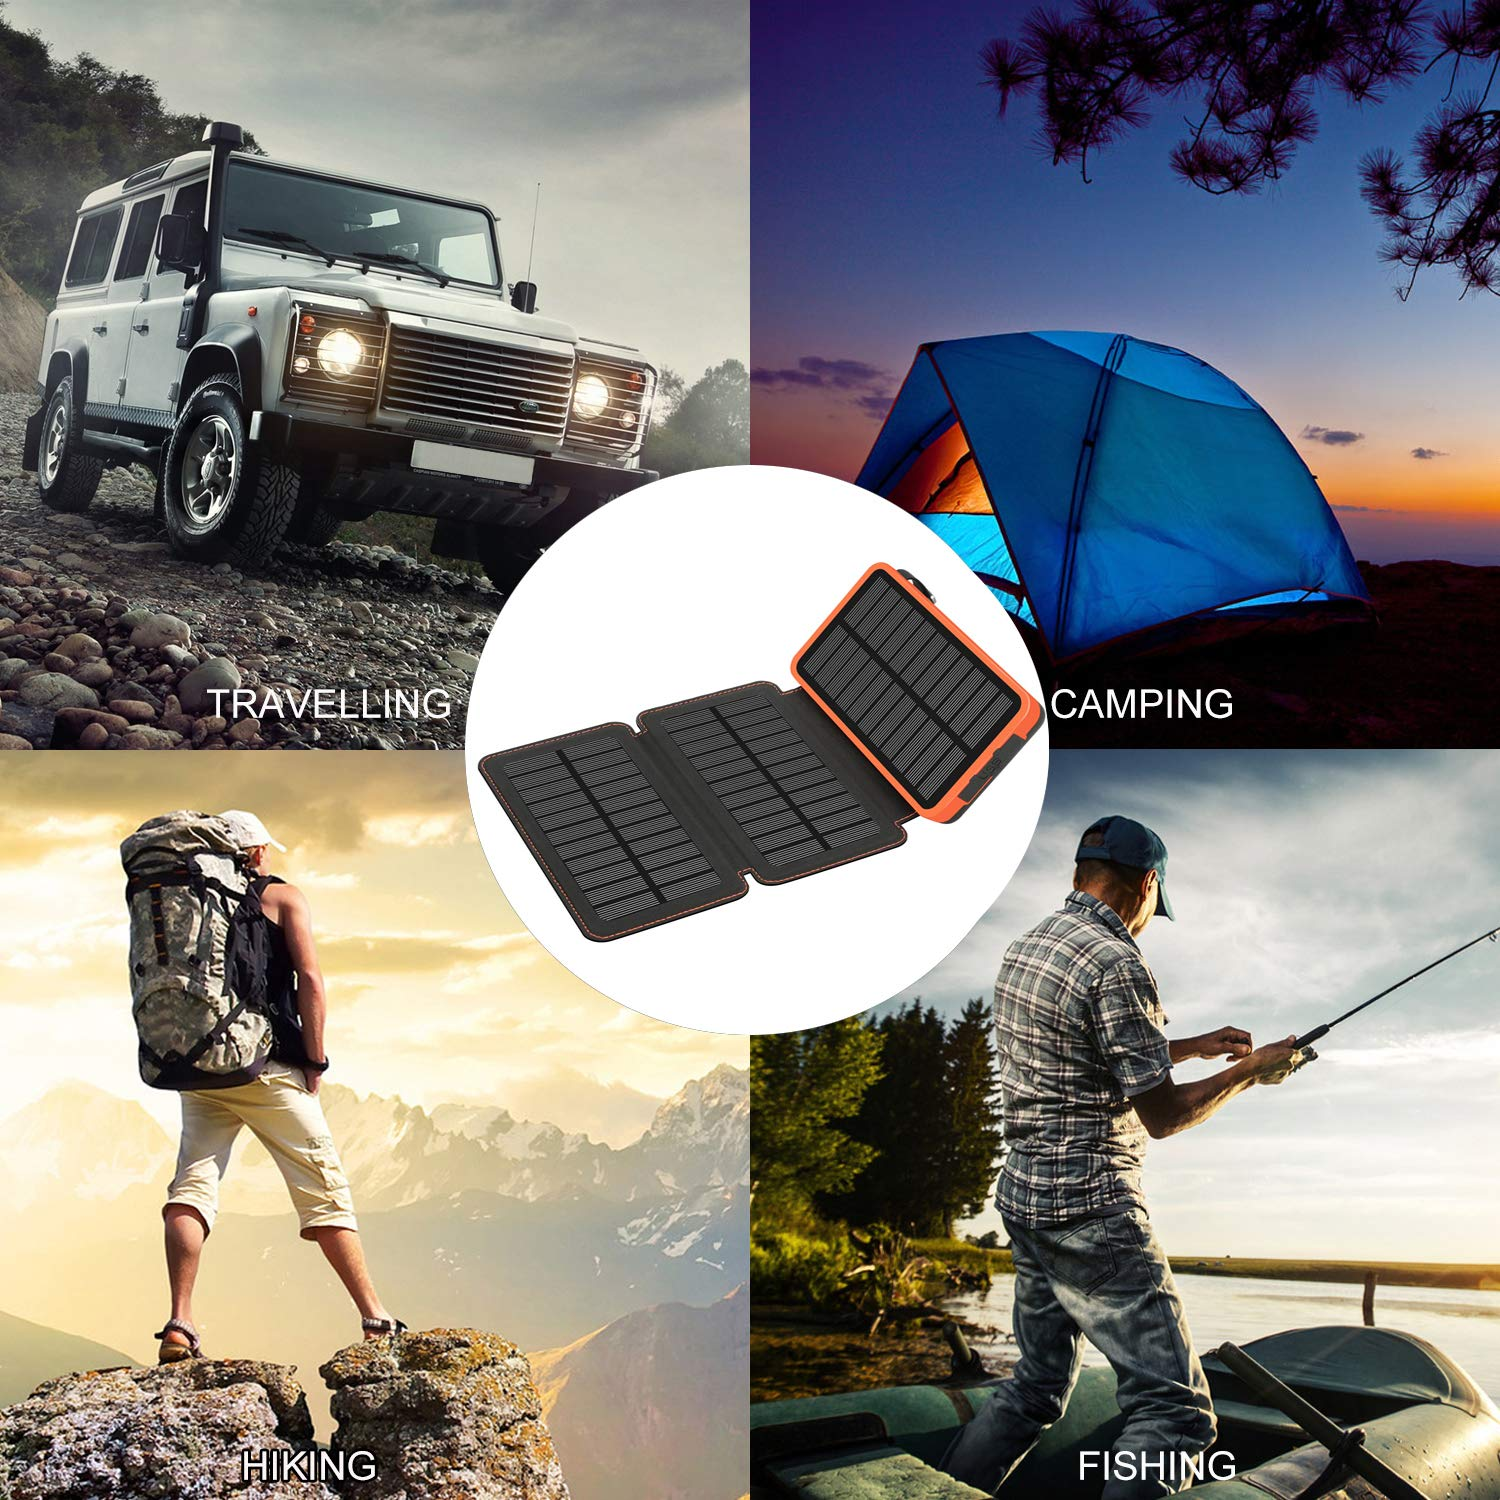 Solar Charger 24000mAh,Solar Power Bank Waterproof Dual USB Output with 3 Solar Panels External Battery Bank with Flashlight for iPhone,Samsung,iPad and Outdoor Camping(Orange) by WBPINE (Image #7)